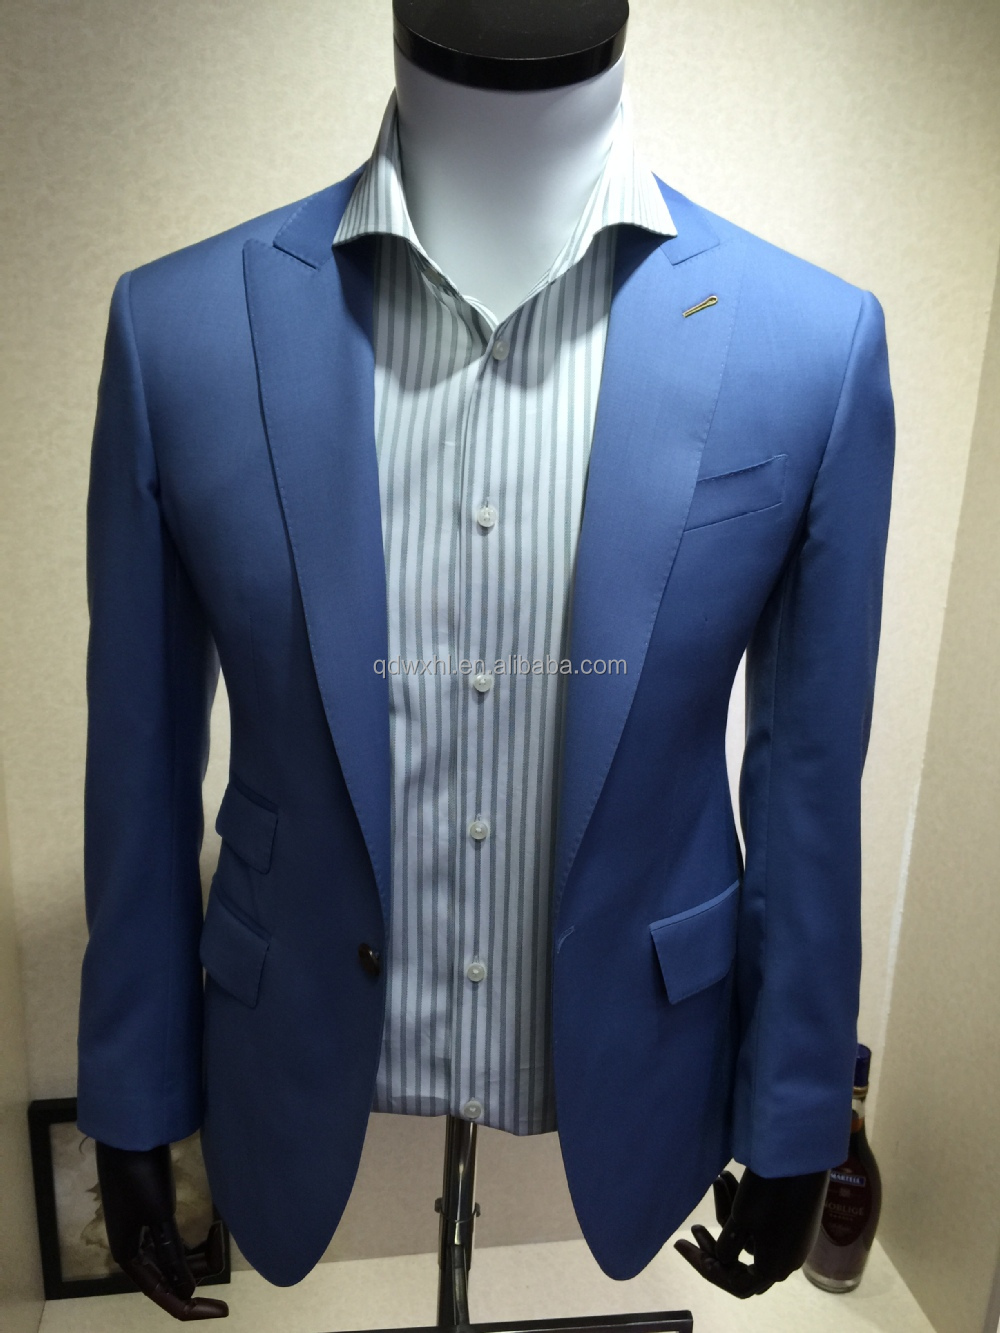 2015 Latest New stylish design slim fit classic mens suits, bespoke ...